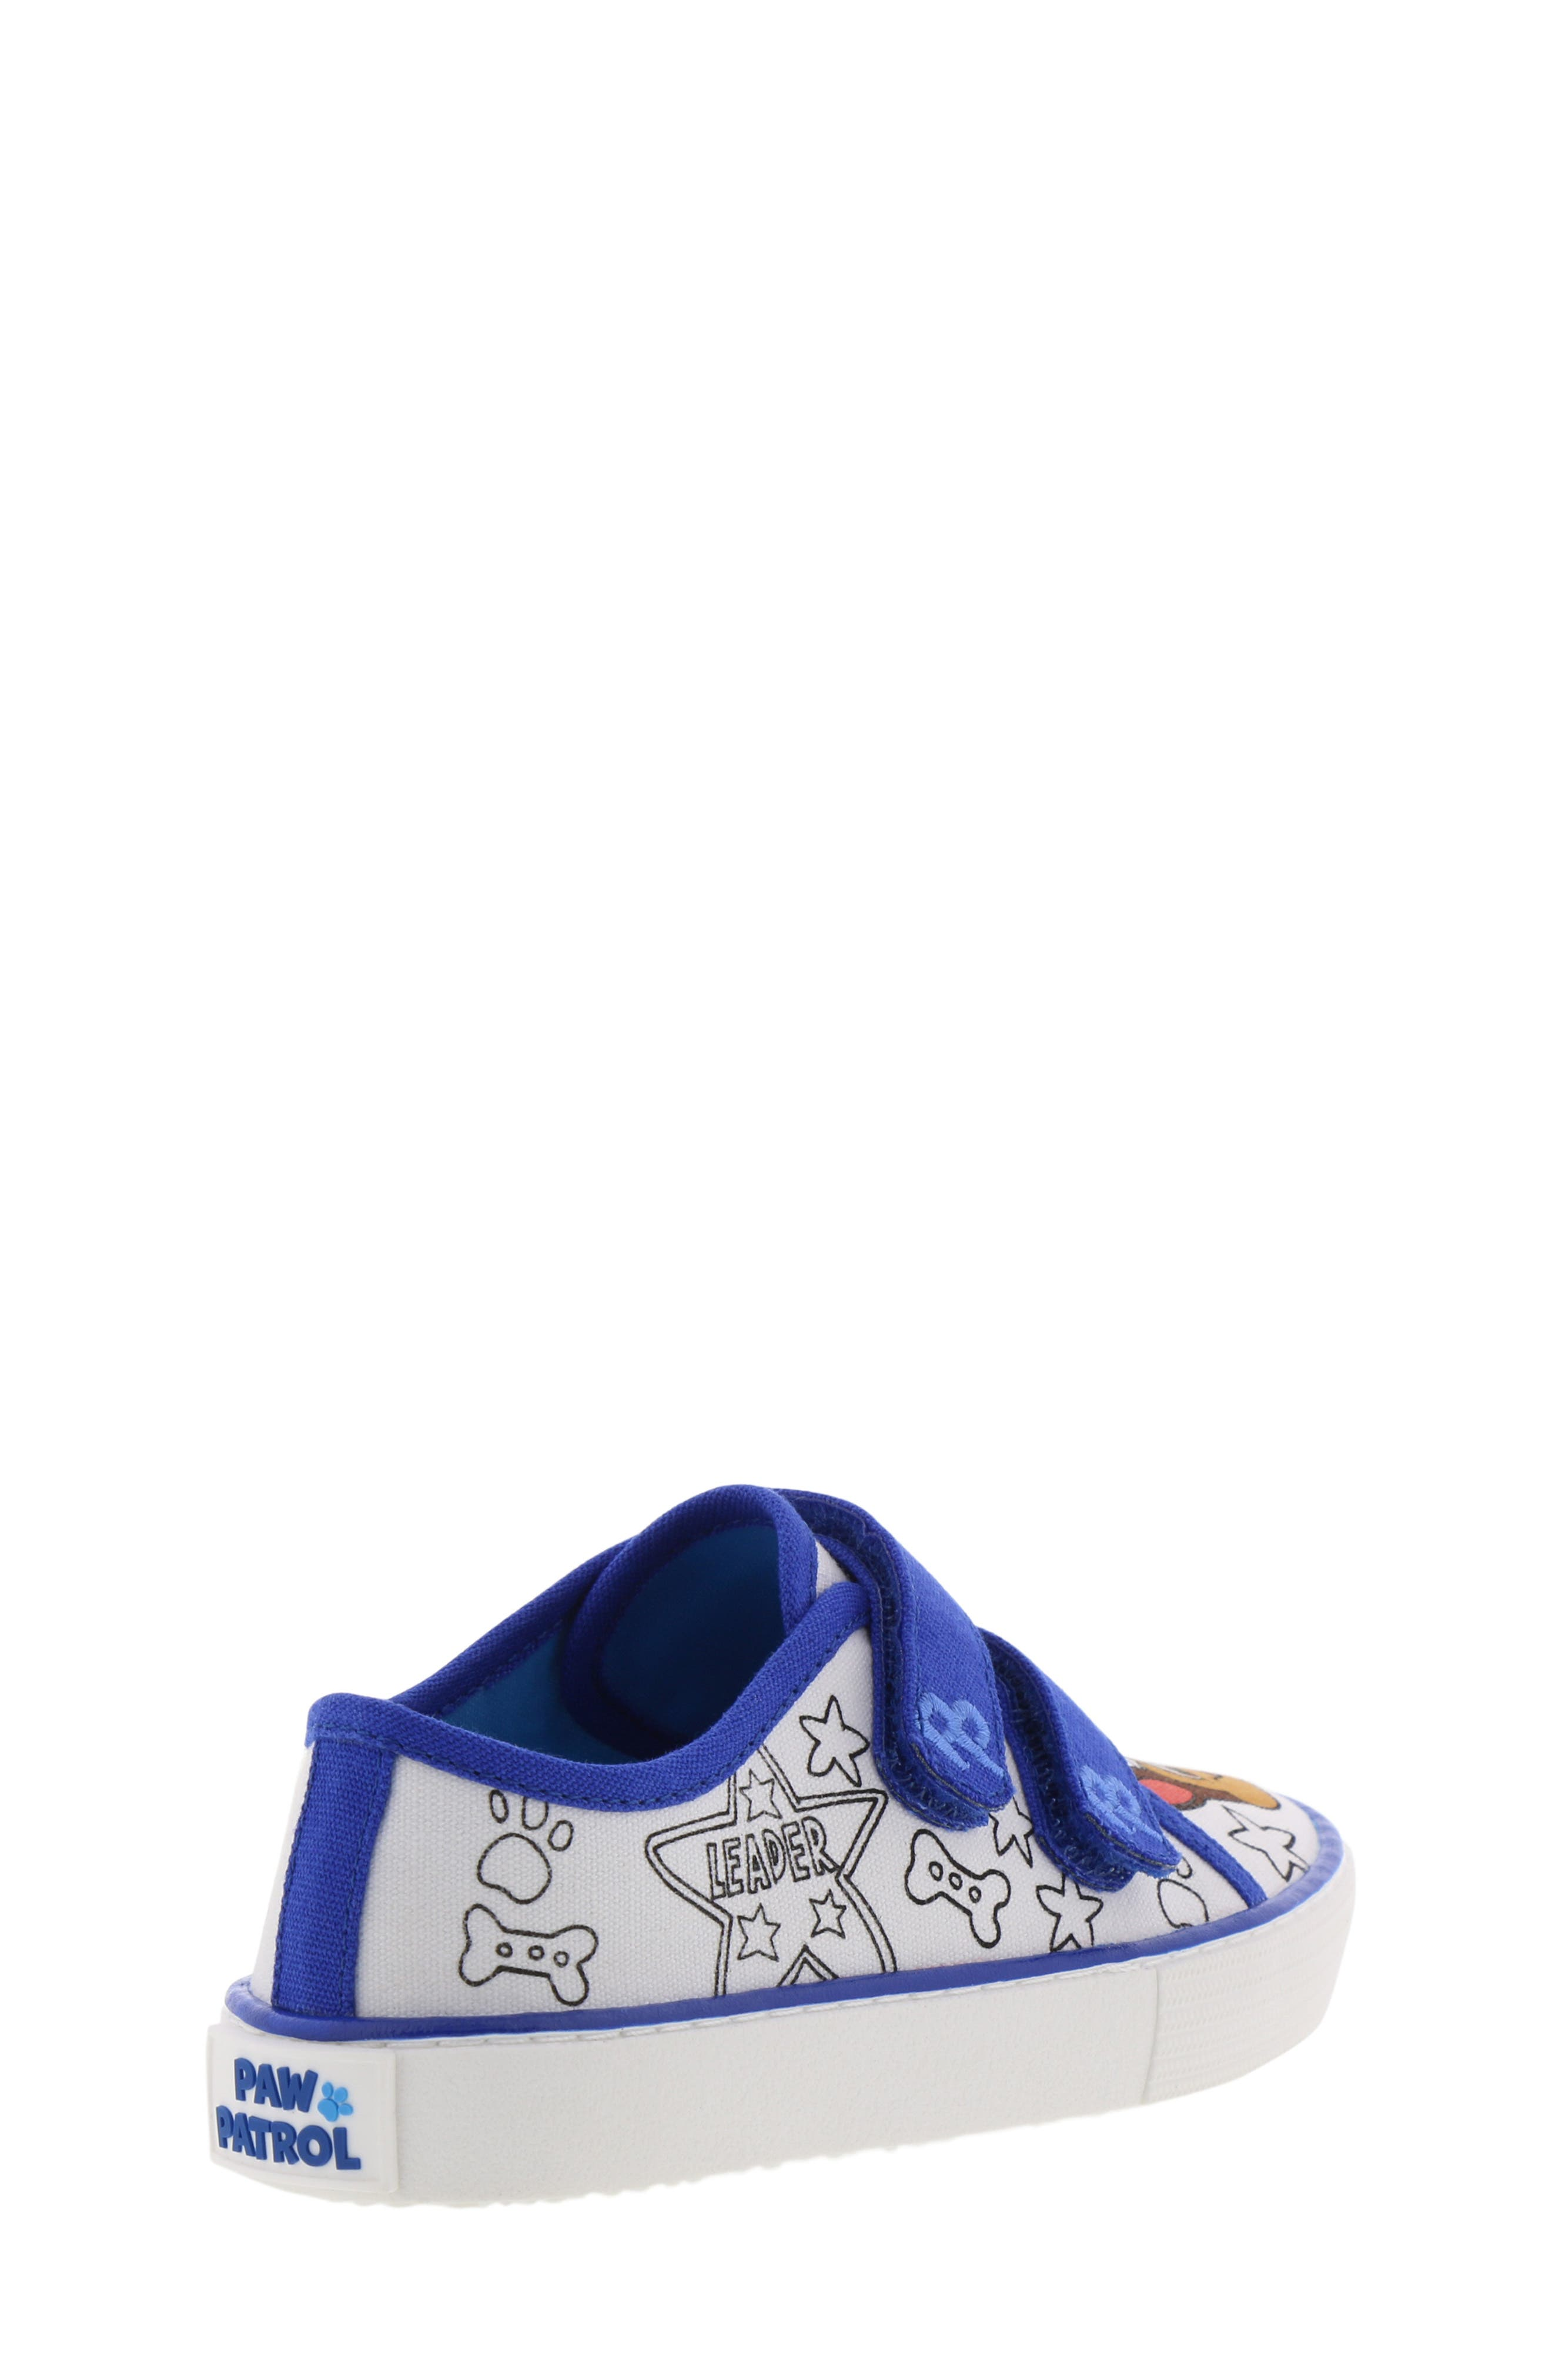 Chase Color DIY Sneaker,                             Alternate thumbnail 2, color,                             WHITE CHASE BLUE